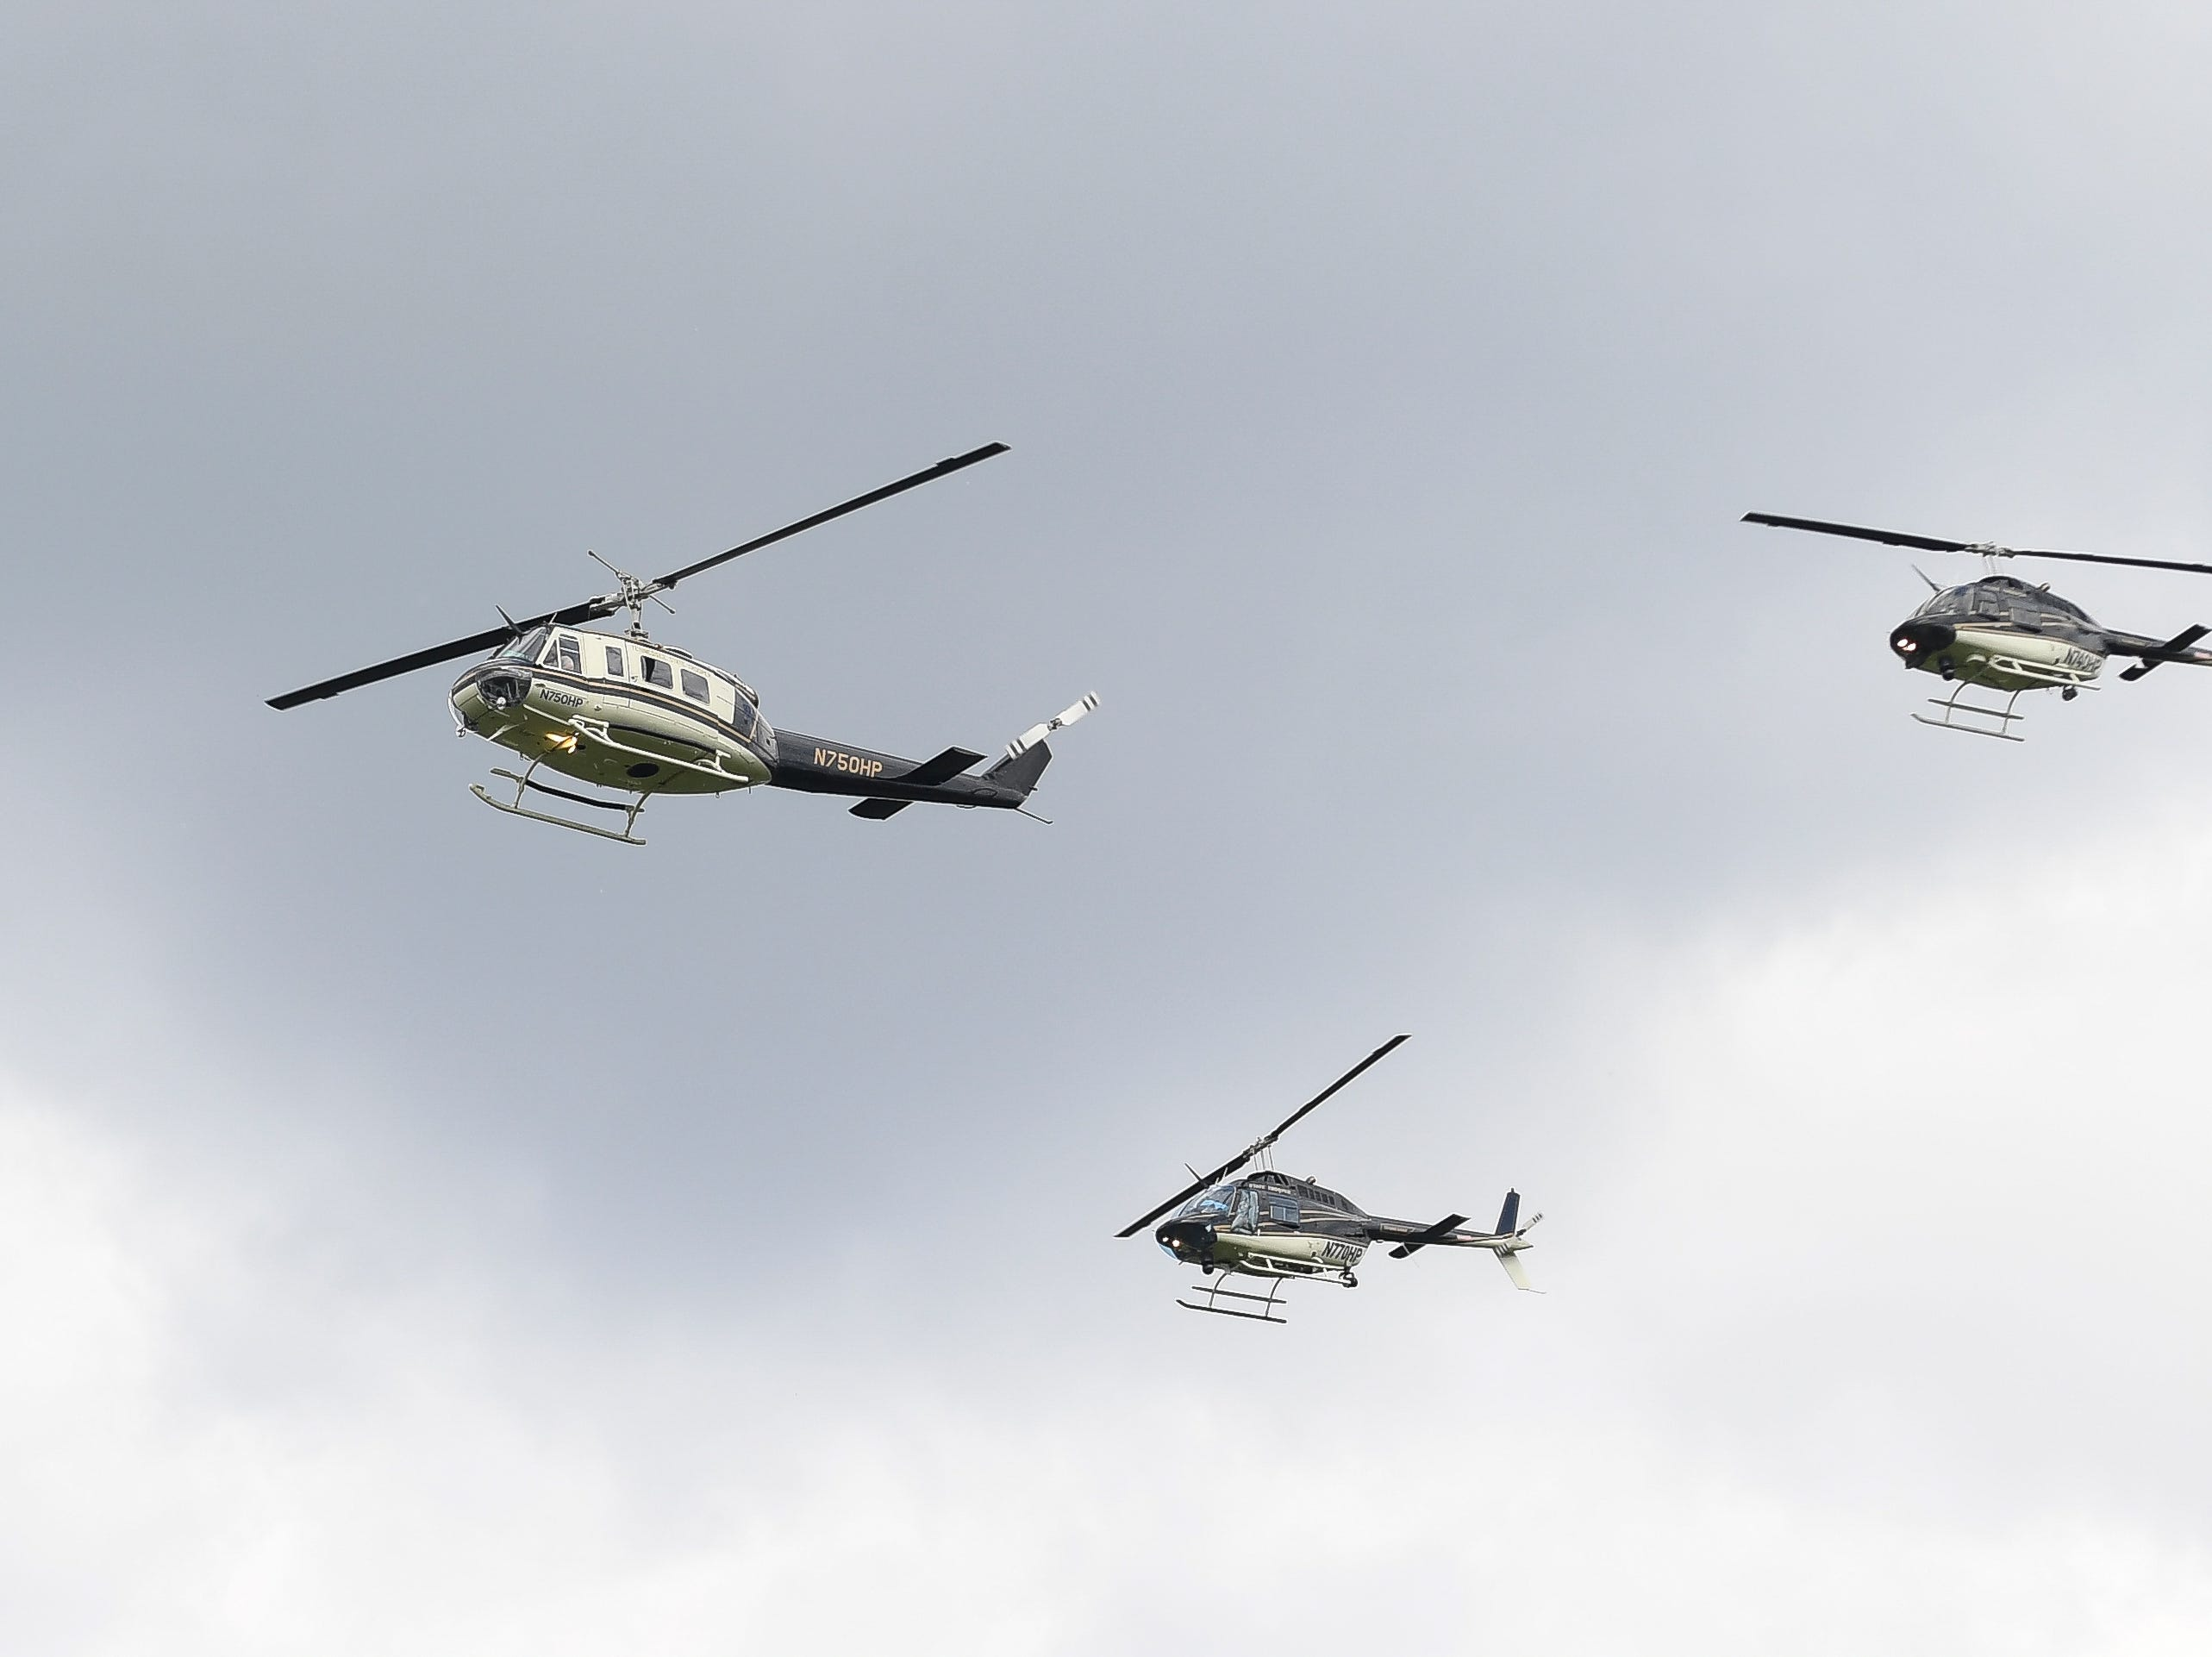 Tennessee Highway Patrol helicopters perform a flyover during the burial of Tennessee State Trooper Matthew Gatti at Ridgecrest Cemetery in Jackson, Tenn., Monday, May 13, 2019. Gatti died in the line of duty in an accident while responding to a car fire on I-40 in Madison County on May 6.